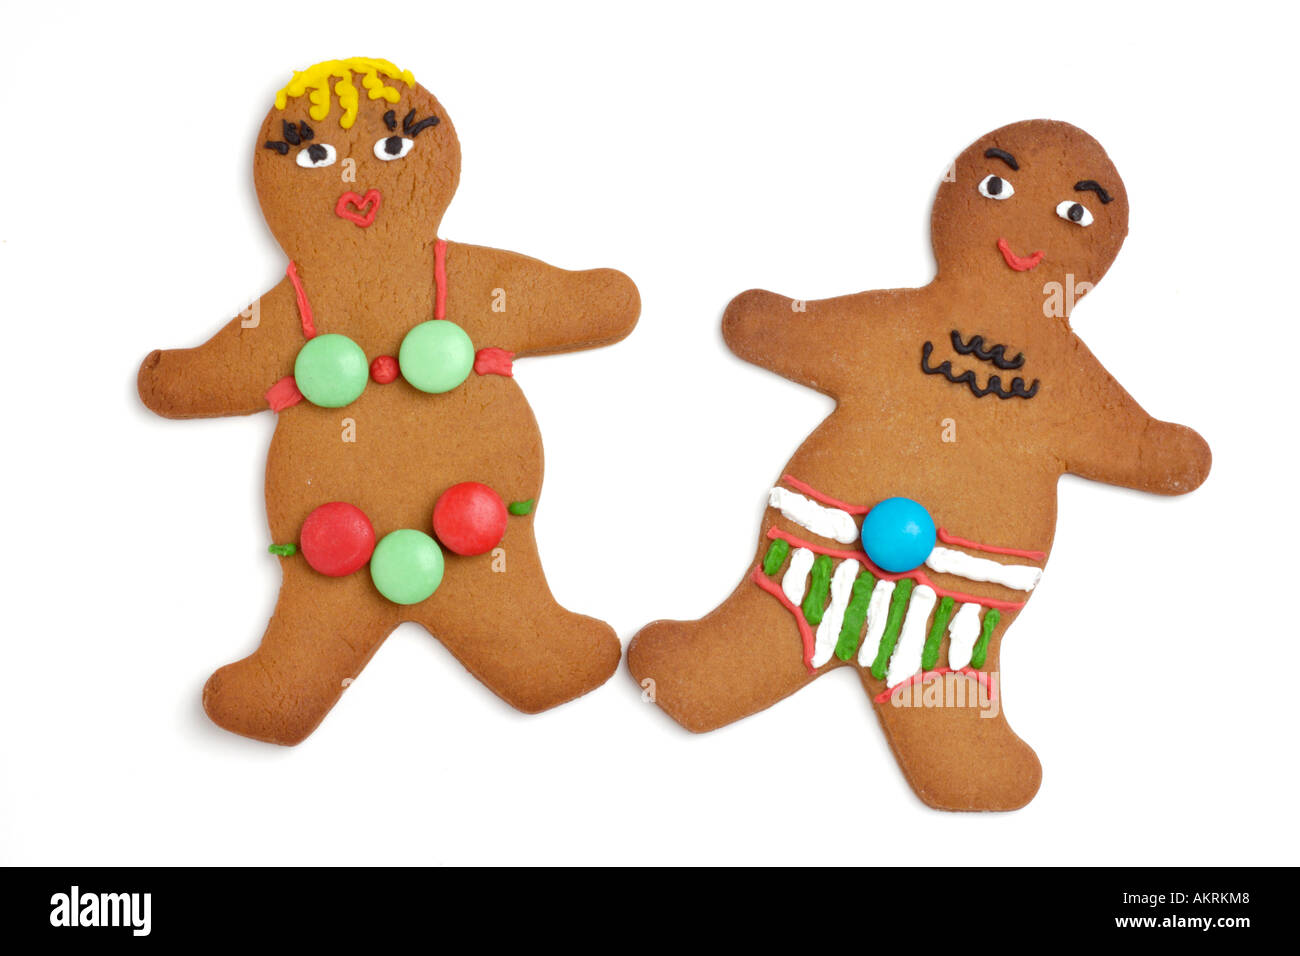 Gingerbread man and woman wearing swimming costumes - Stock Image